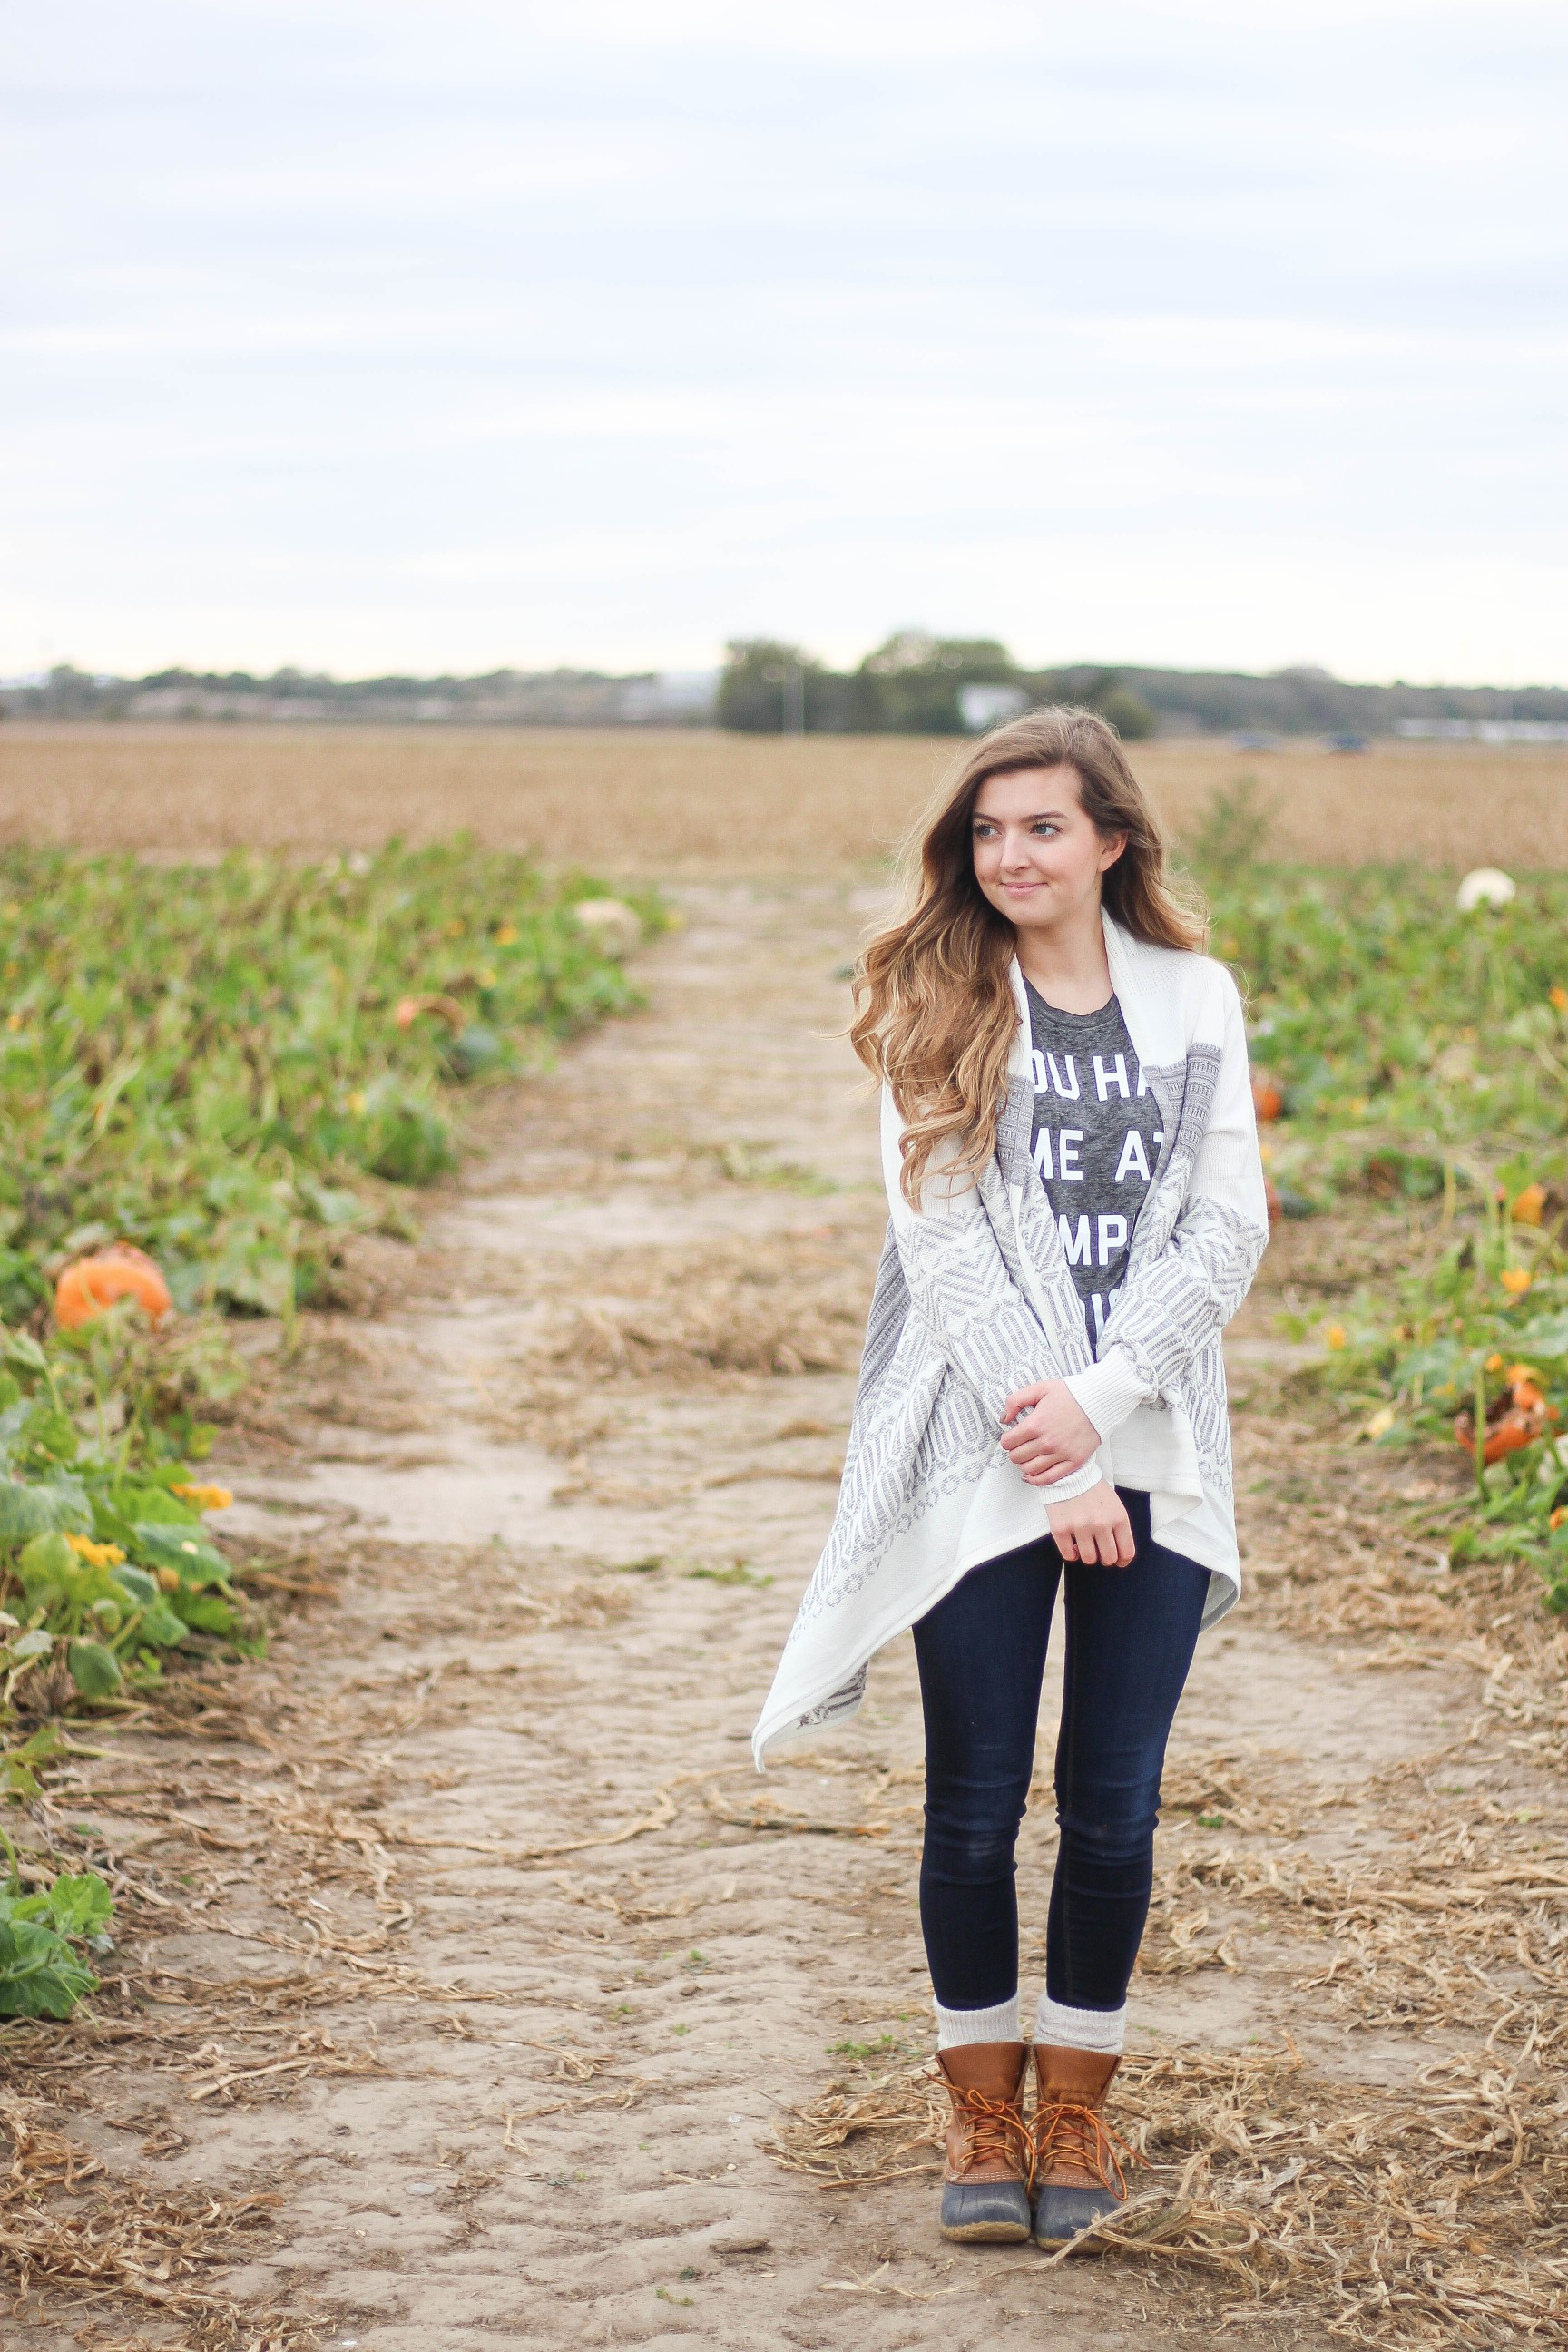 Fall pumpkin patch outfit LL bean boots southern tide by Lauren Lindmark on Daily Dose of Charm dailydoseofcharm.com